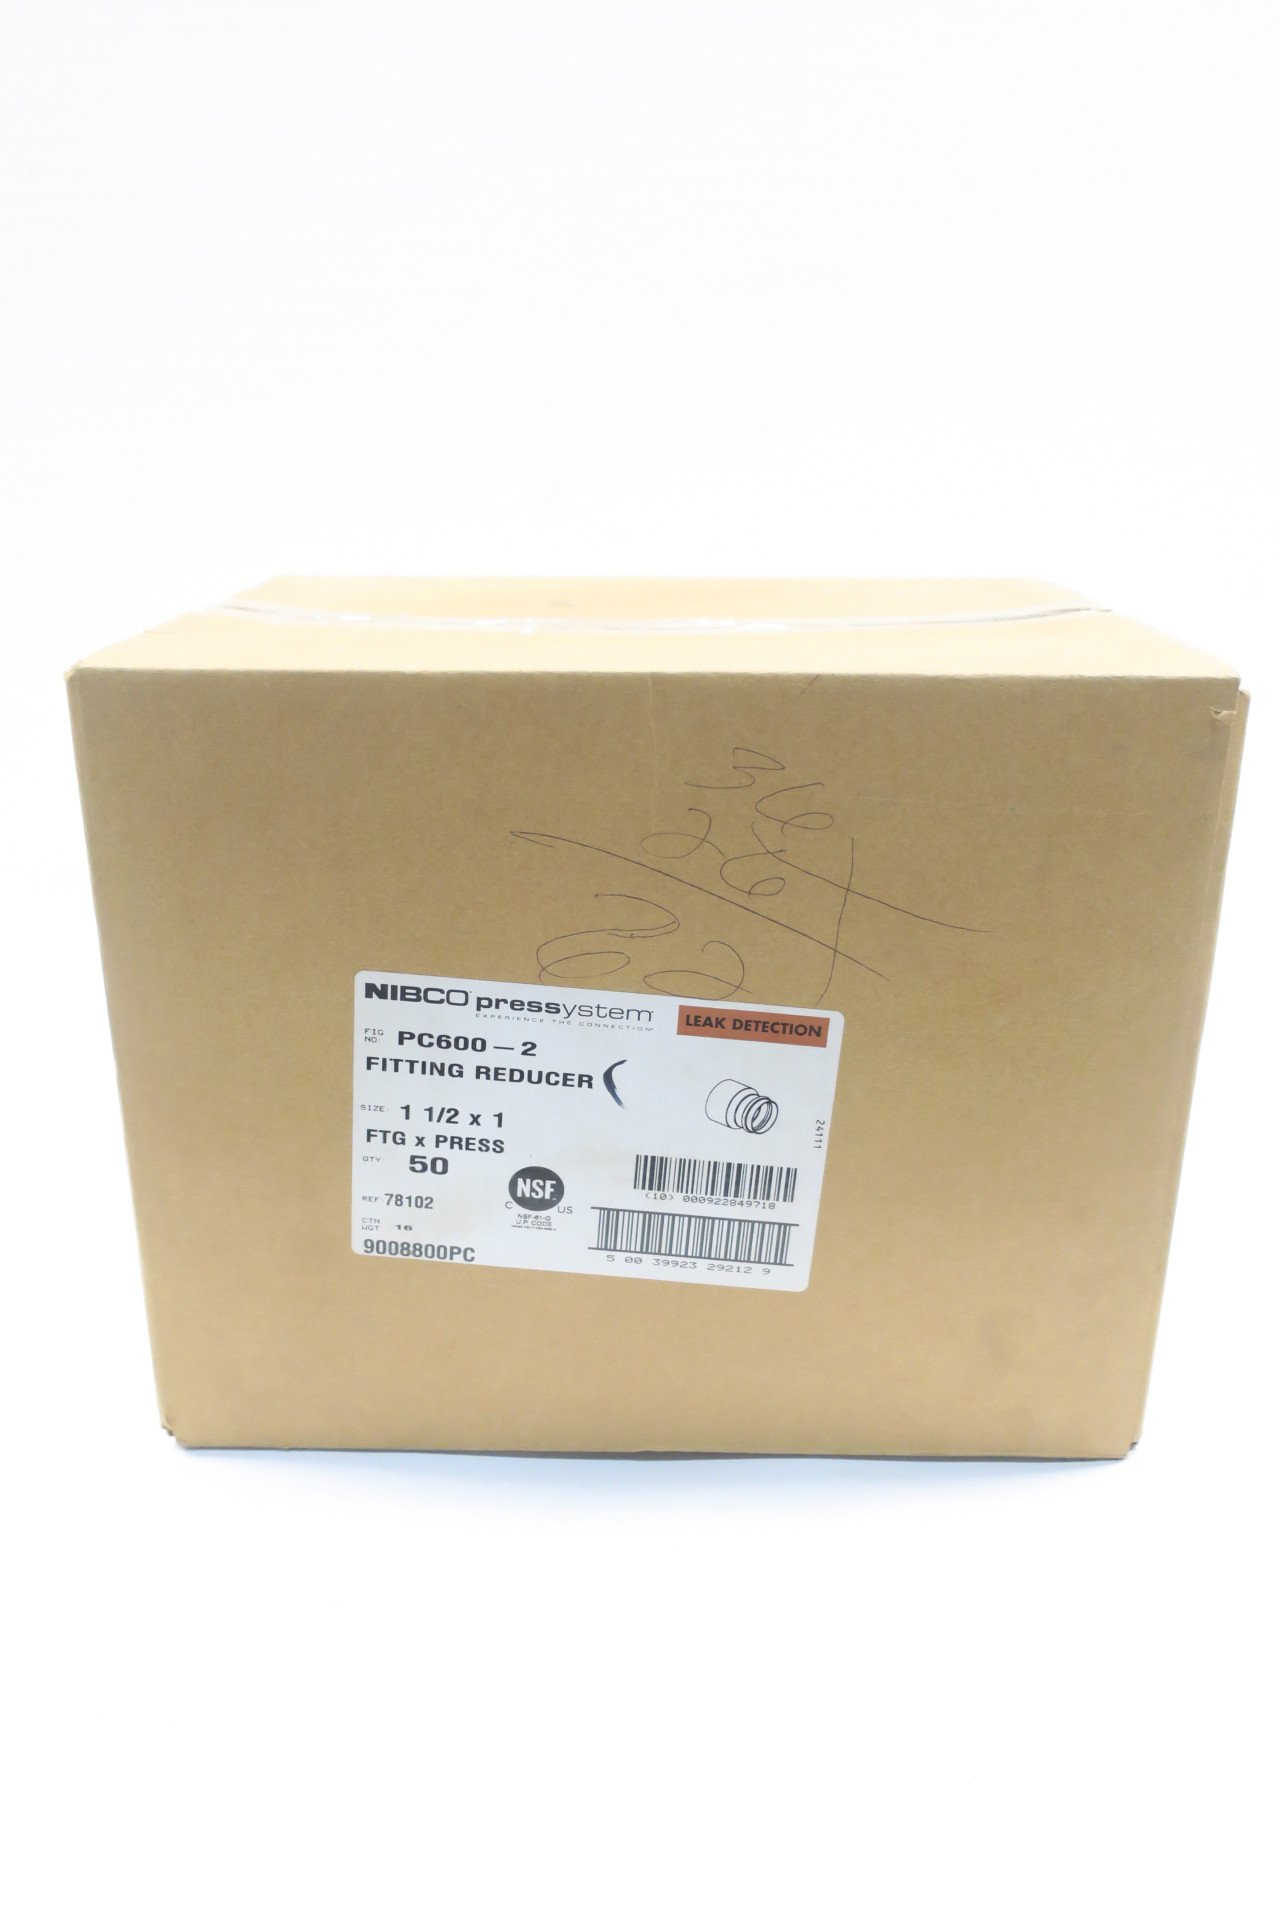 BOX OF 50 NIBCO 9008800PC PC600-2 PRESSYSTEM FITTING REDUCER 1-1/2 X 1IN D587552